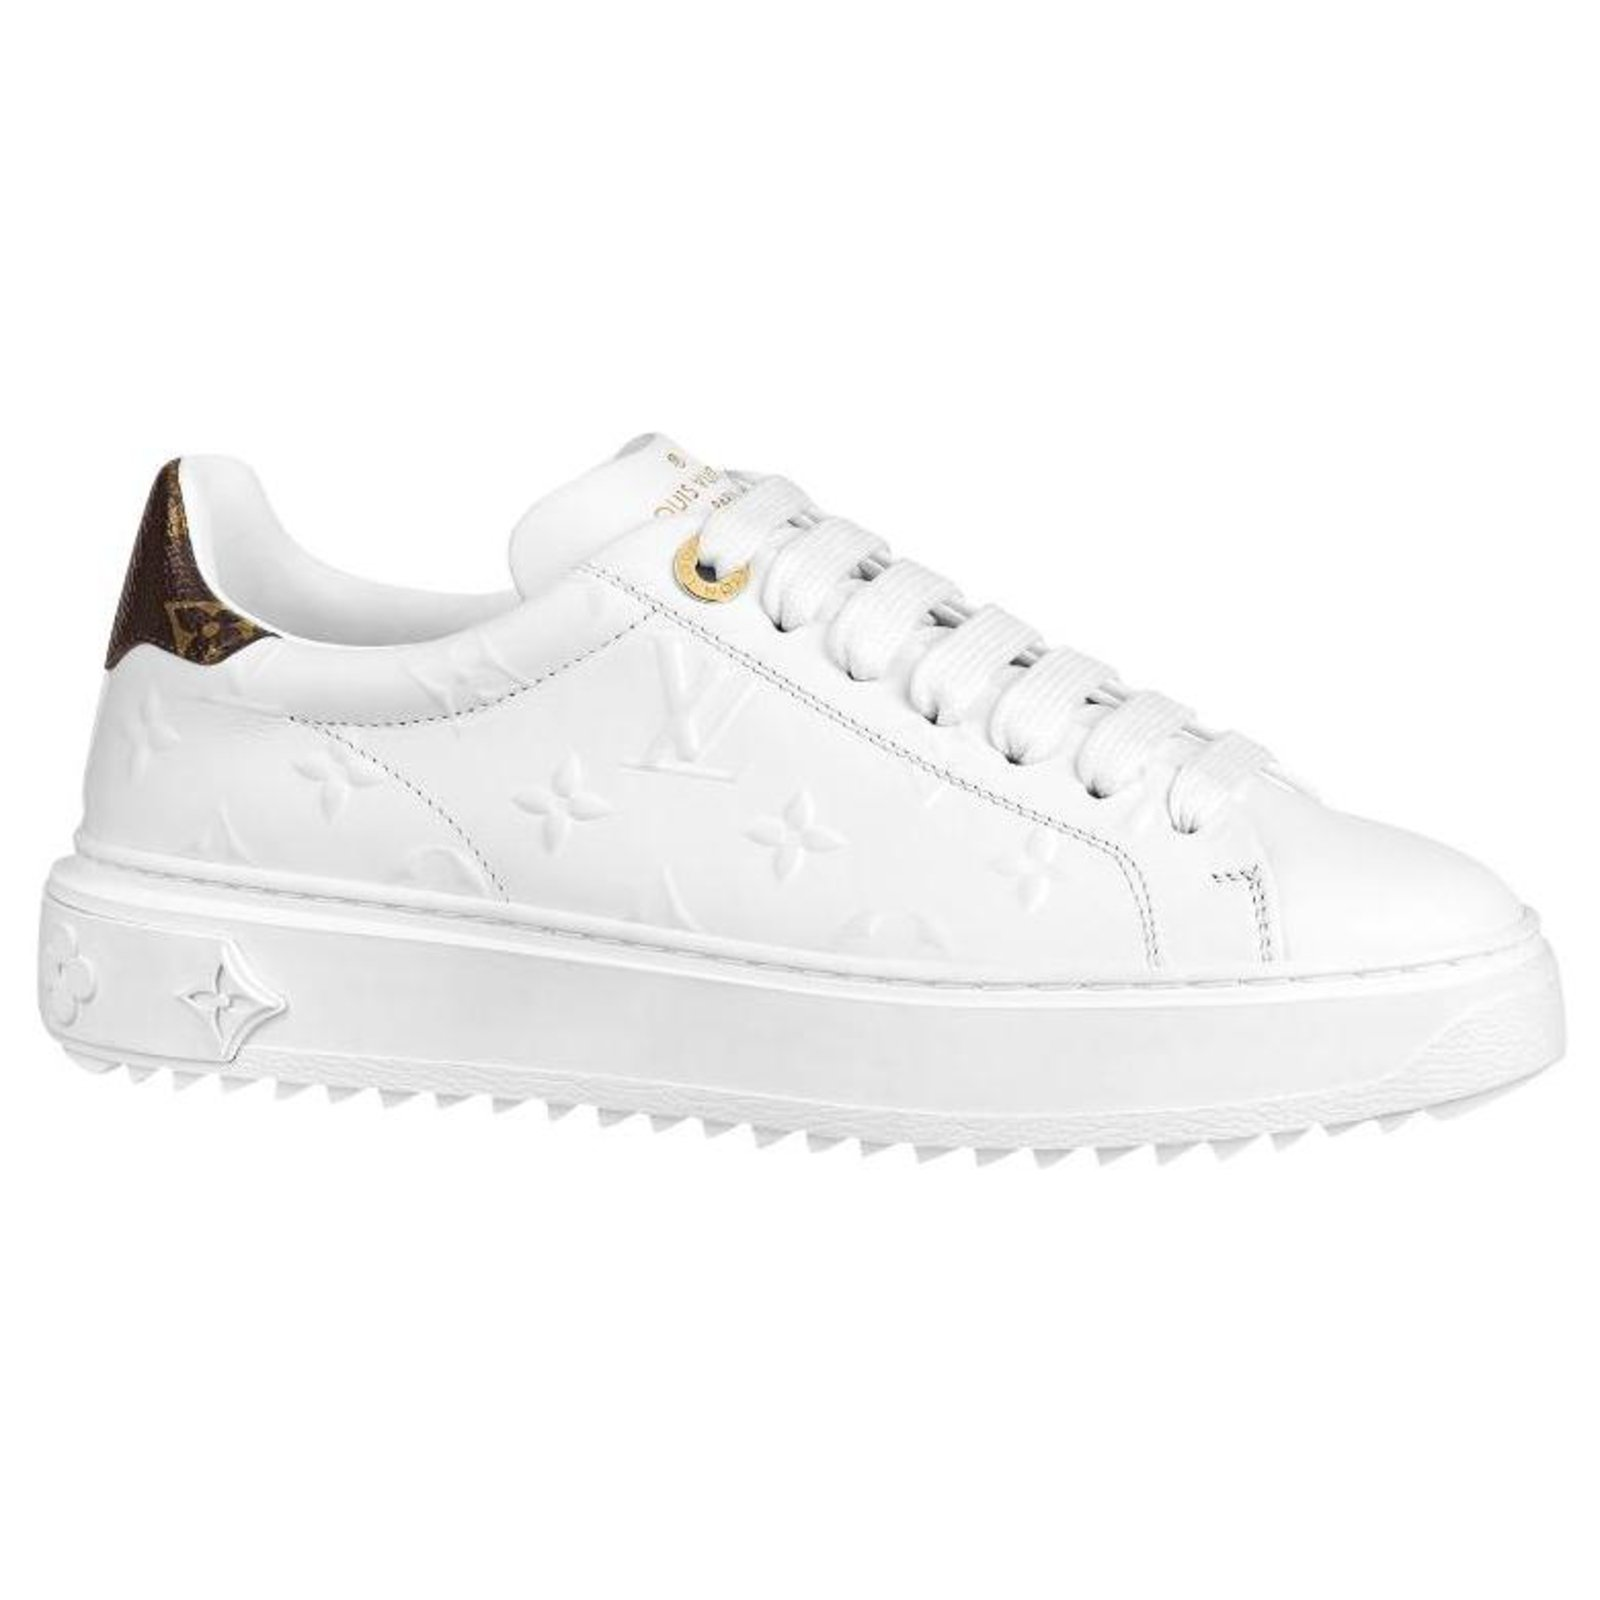 Louis Vuitton LV sneakers Time Out